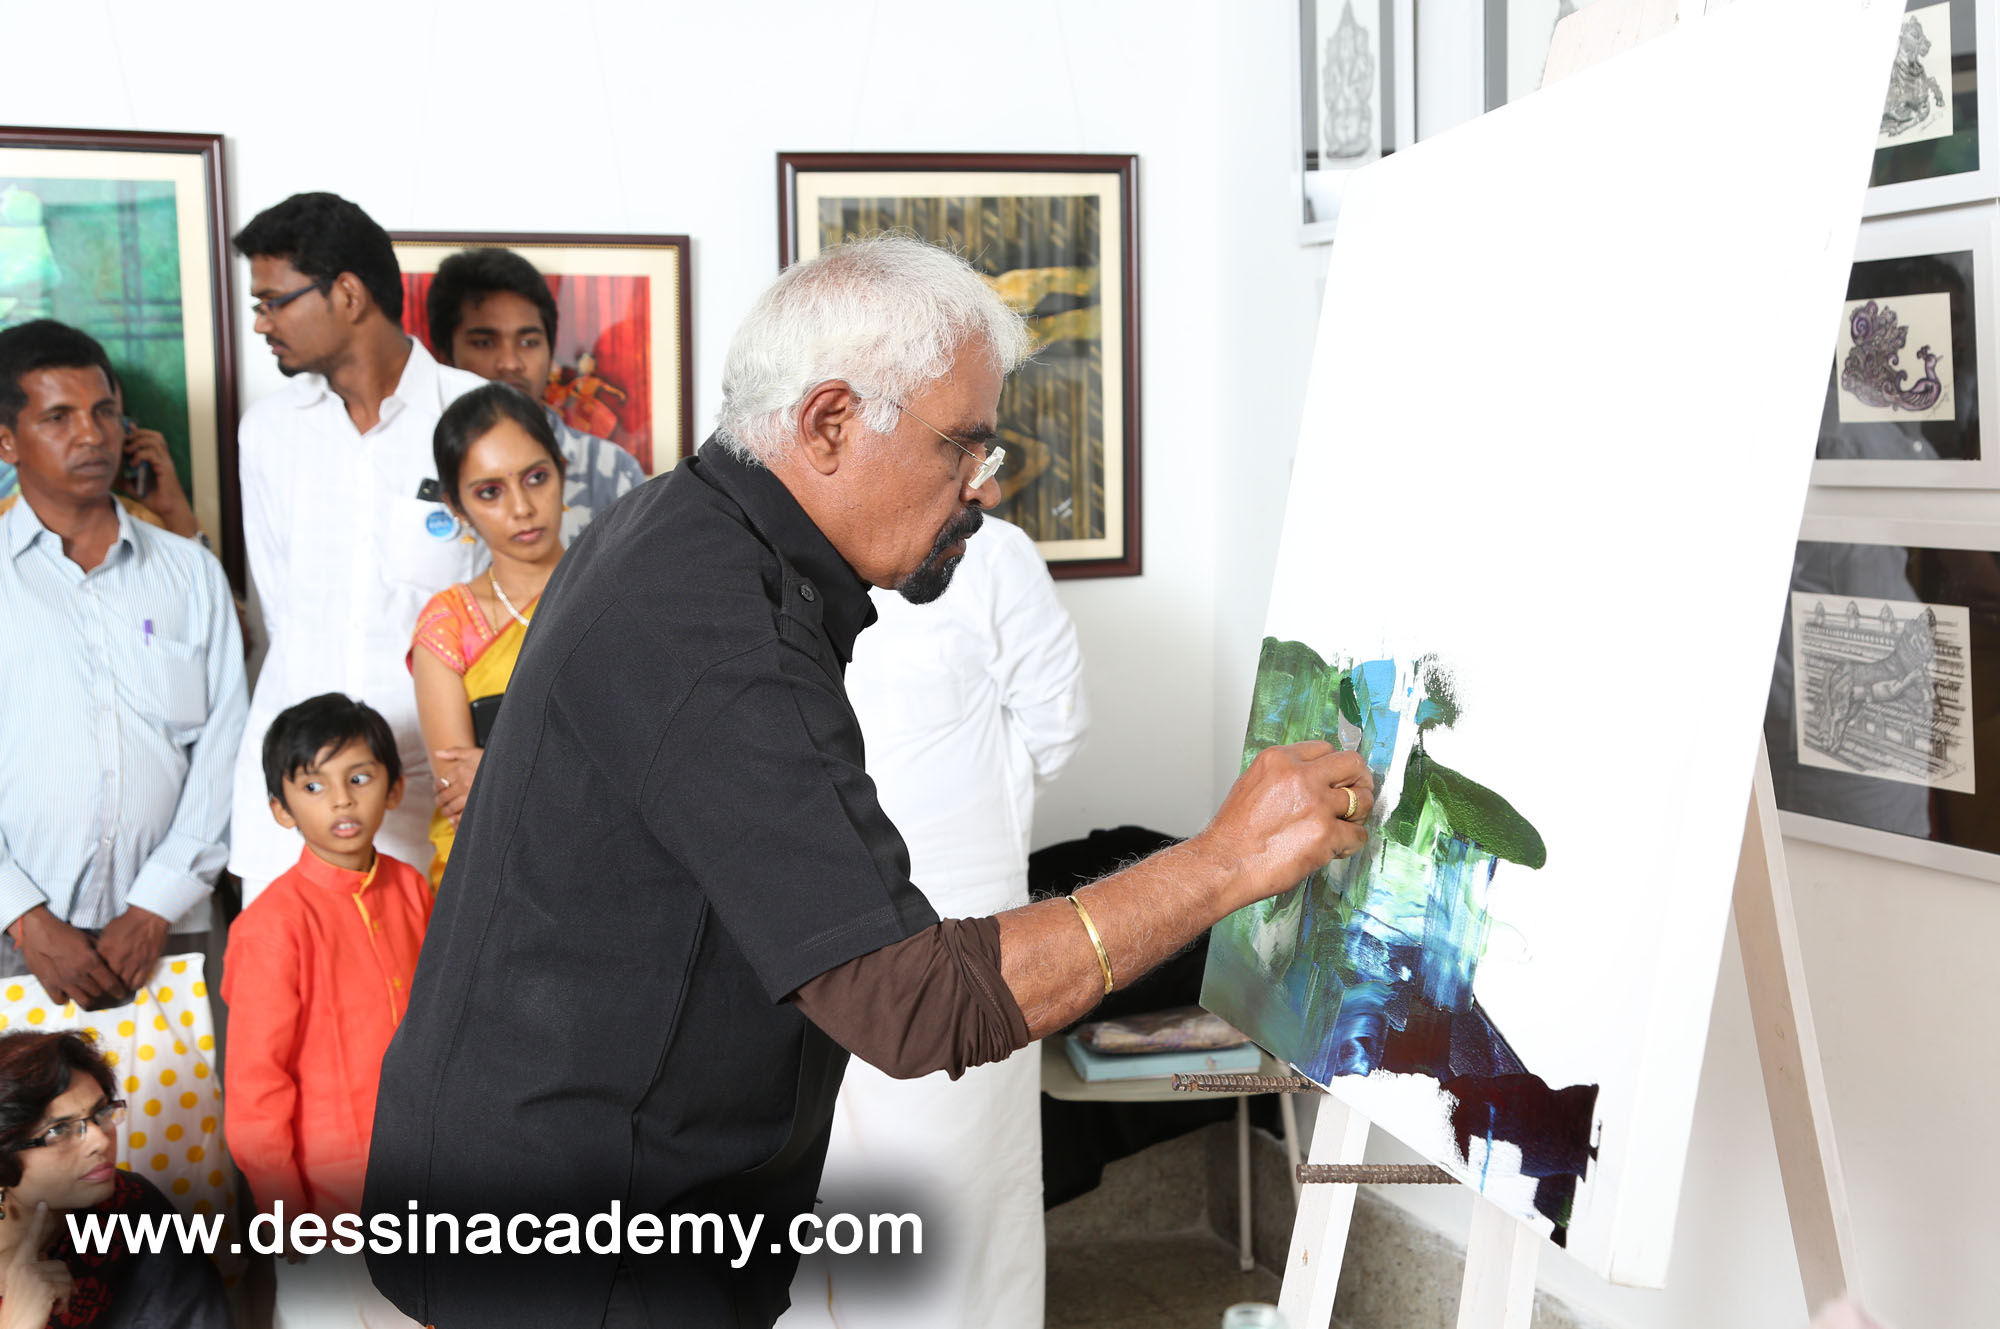 Dessin School of arts Event Gallery 2, part time fine arts courses School in Anna Nagar East L BlockDessin School of Arts